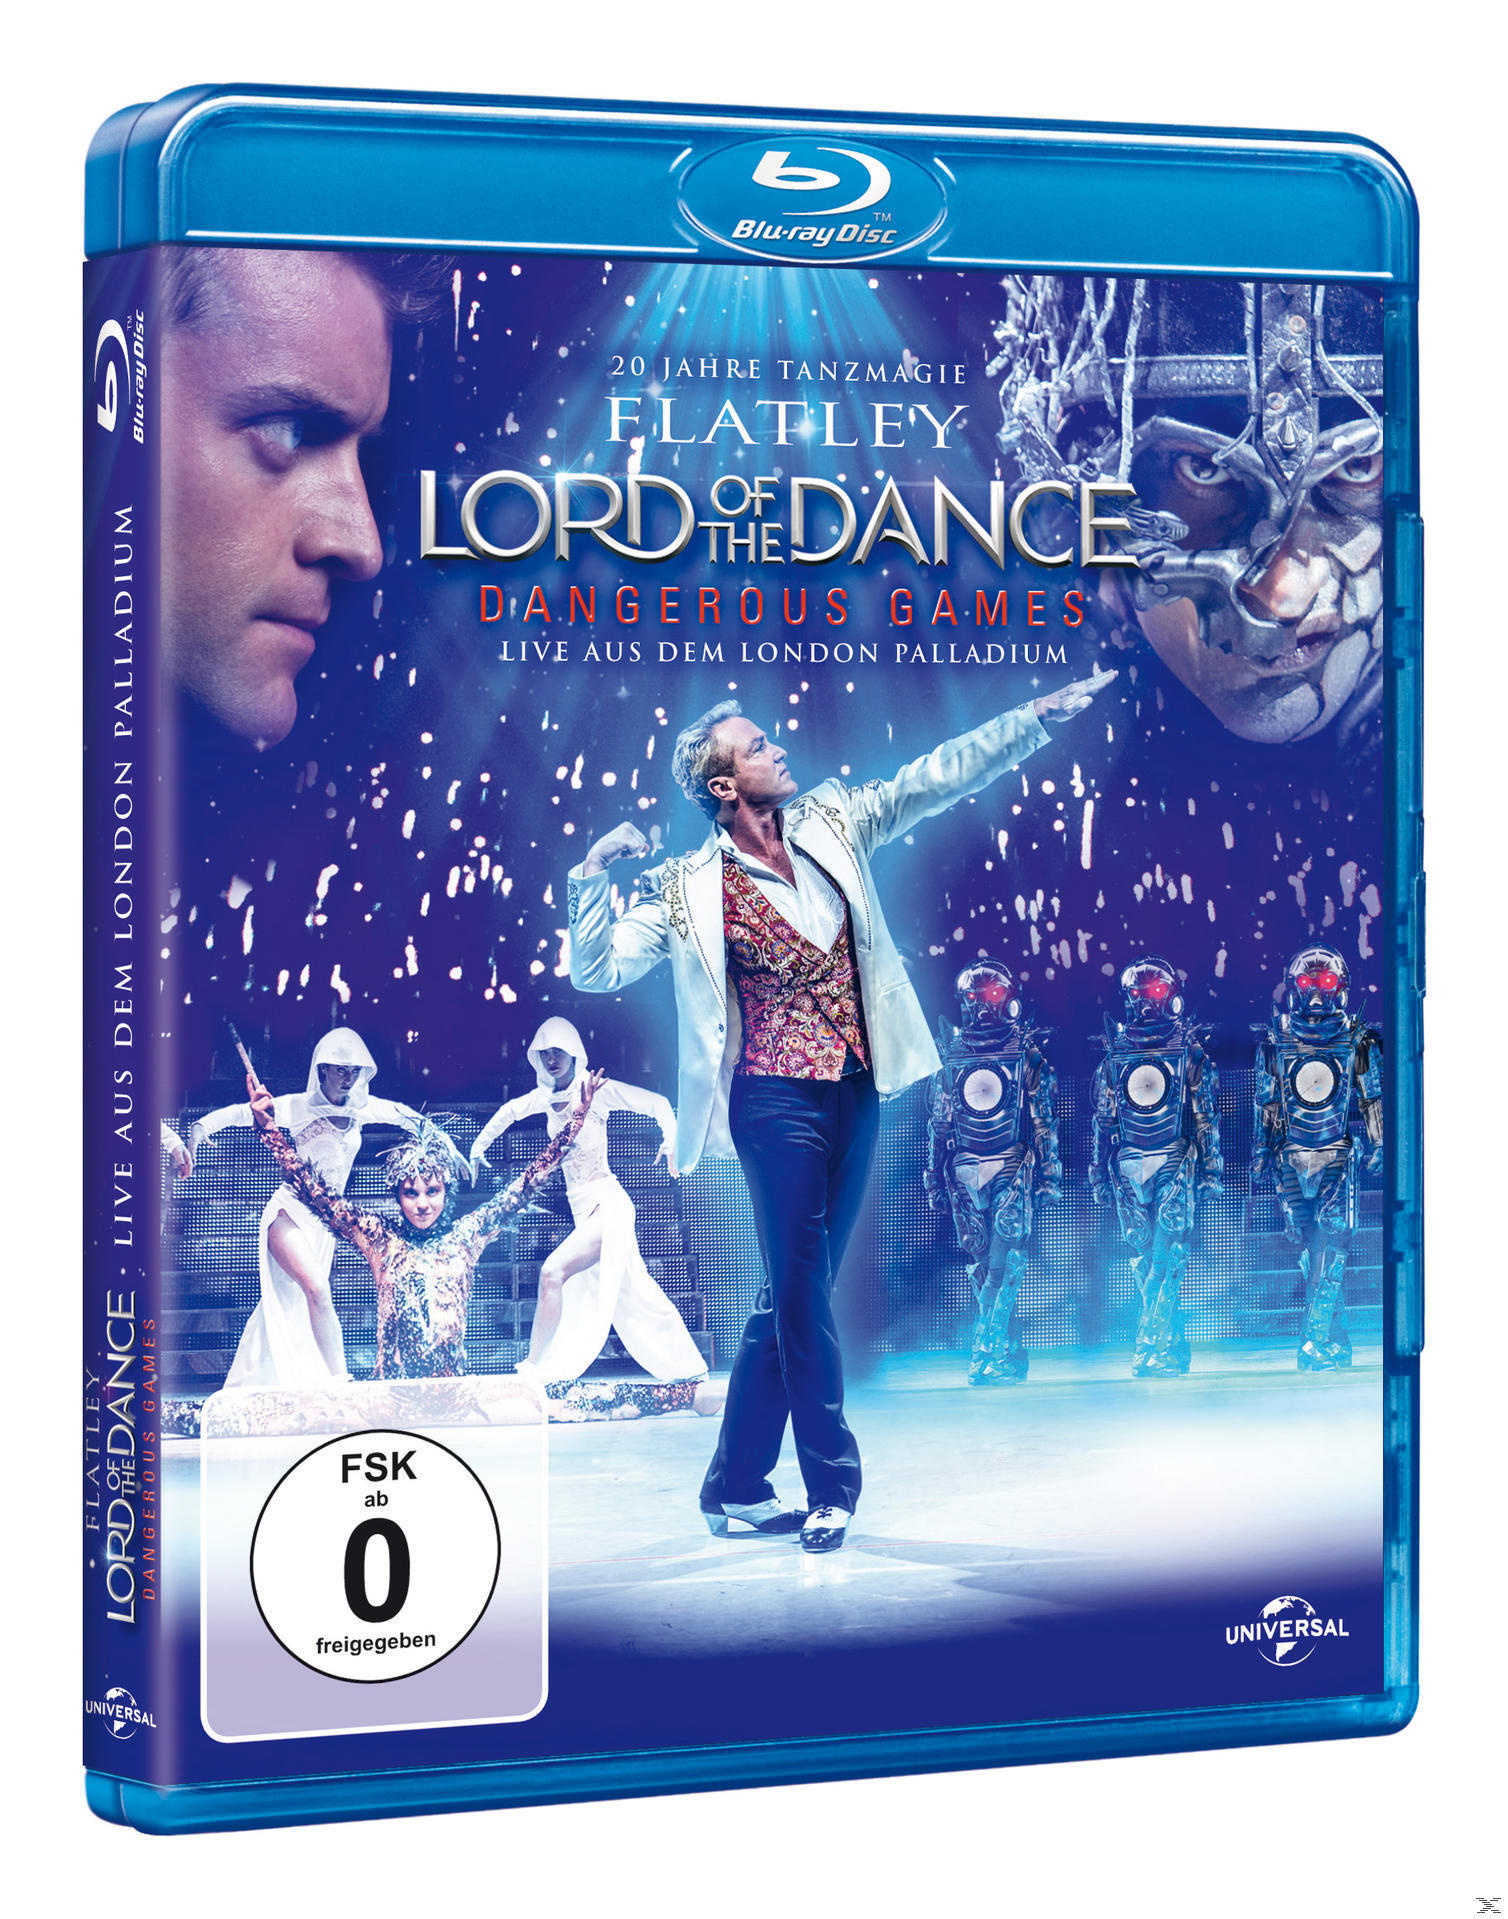 Lord Of The Dance - Dangerous Games (BLU-RAY) für 17,99 Euro